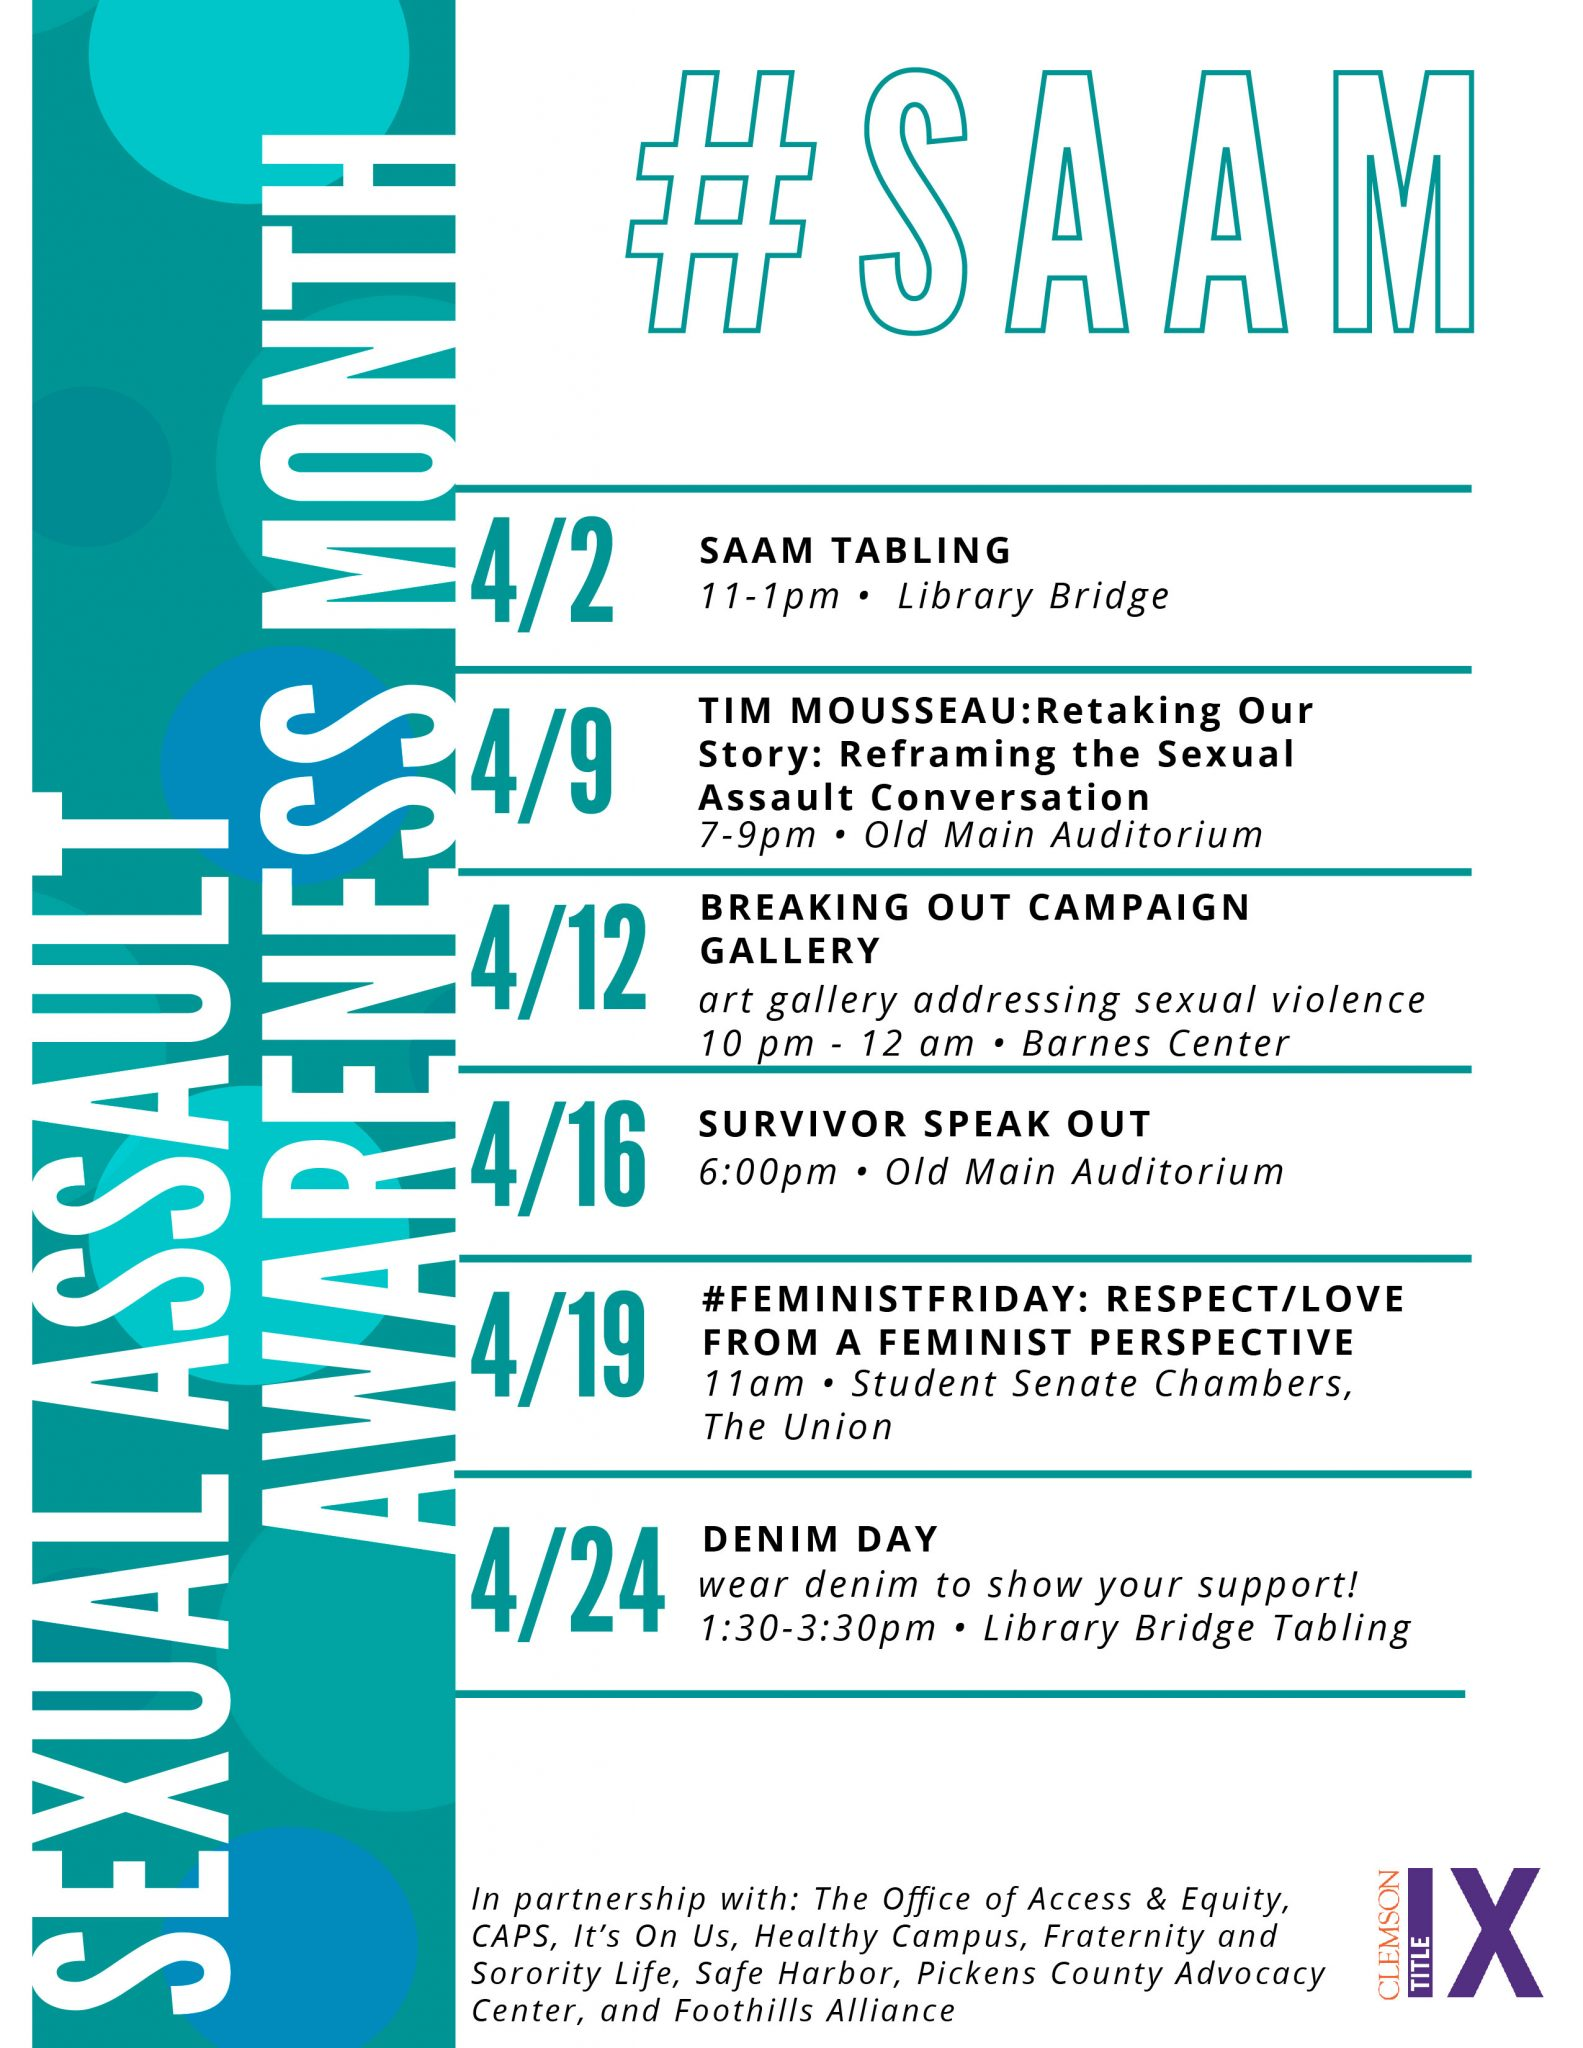 SAAM Events